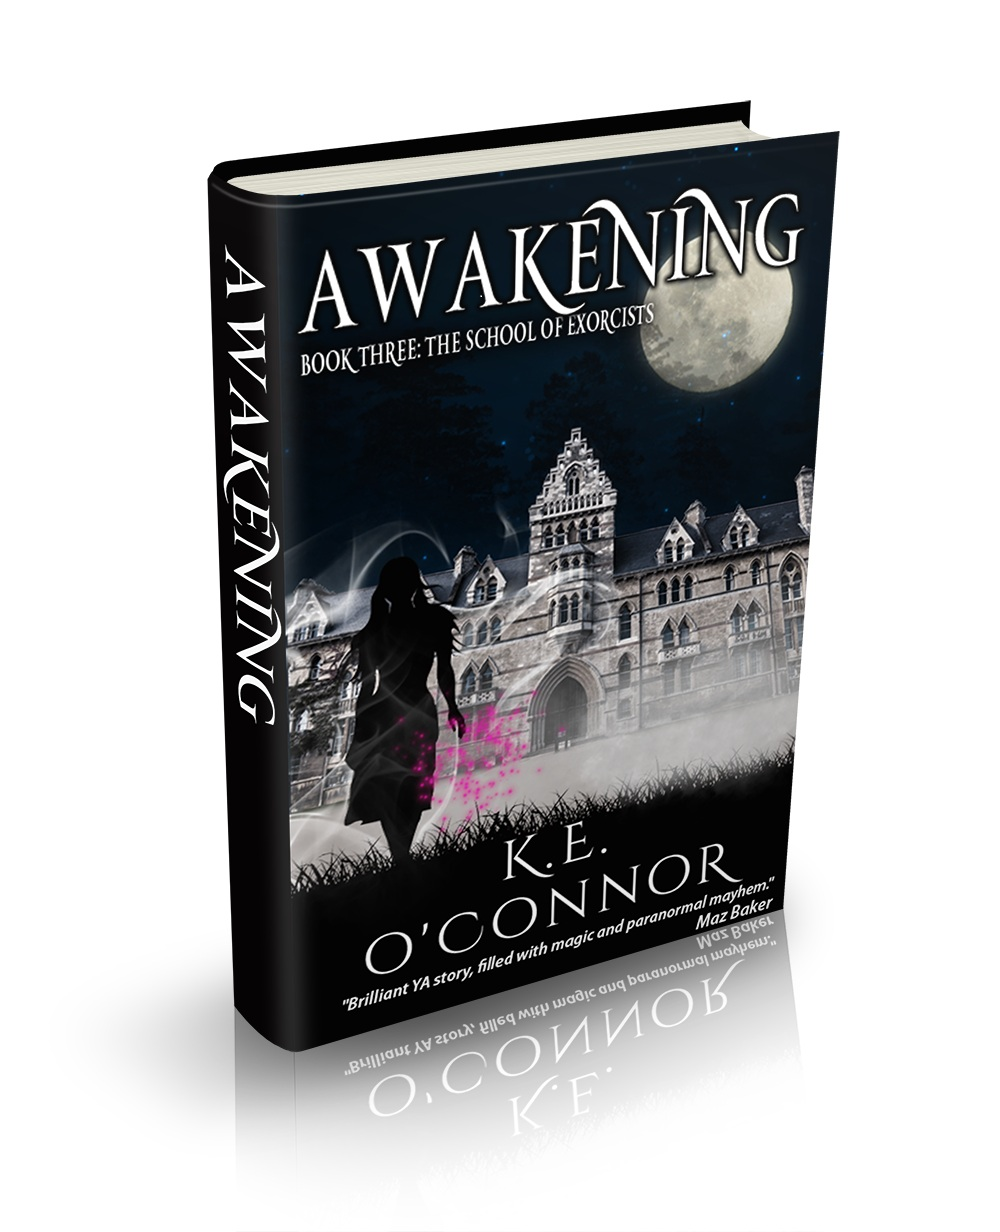 K E O'Connor School of Exorcists paranormal romance and adventure